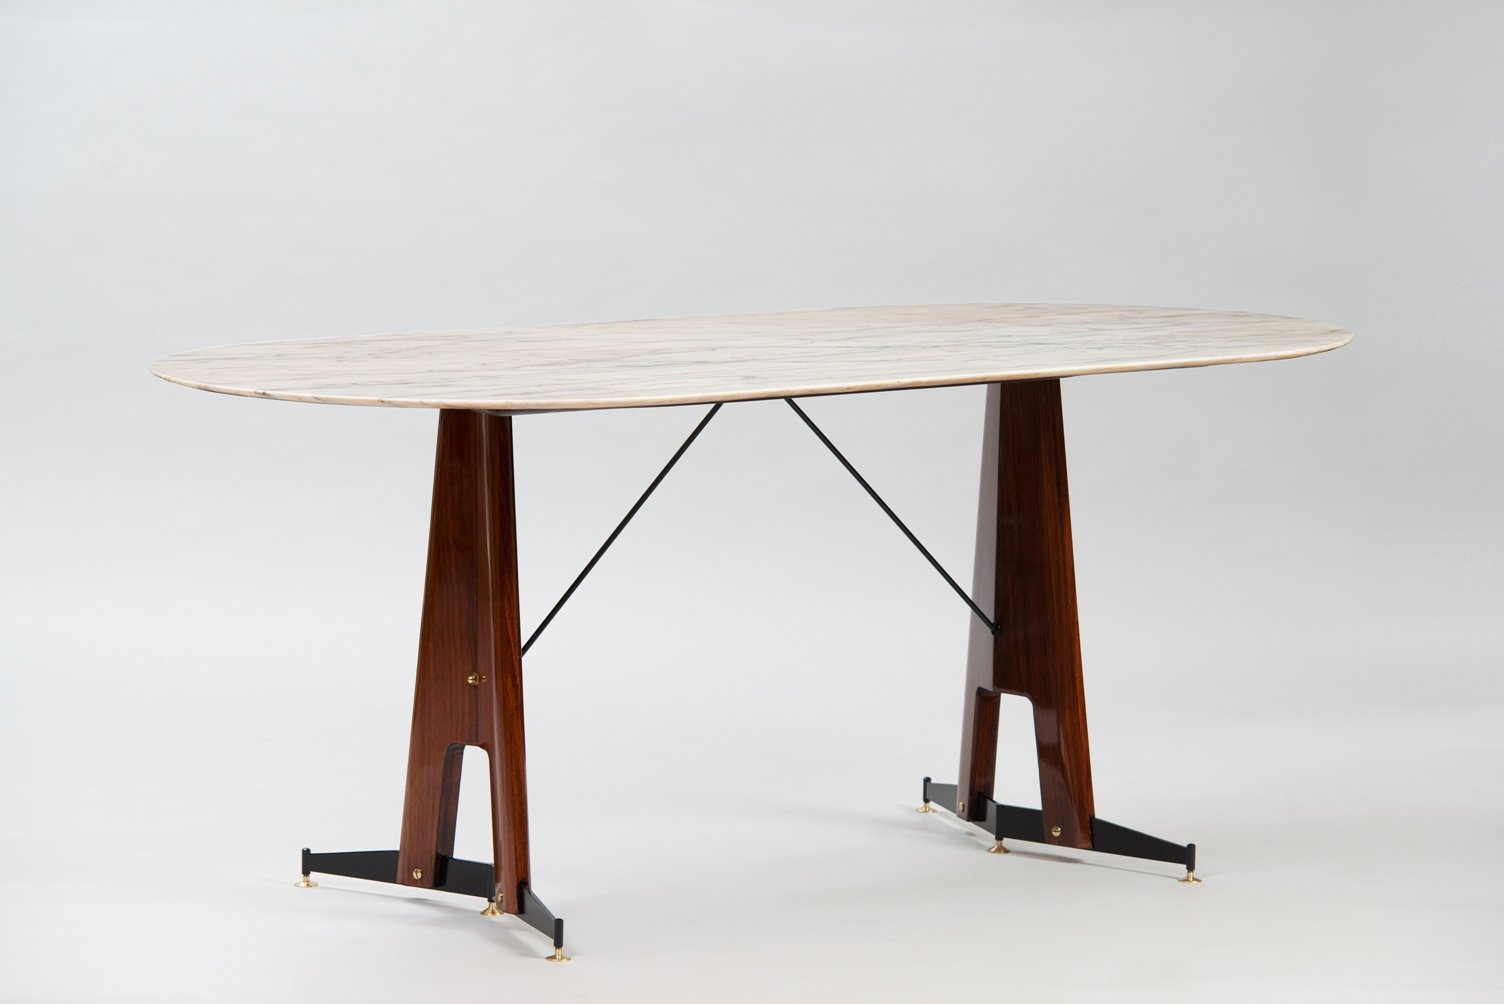 Table salle a manger marbre design for Table salle a manger triangulaire